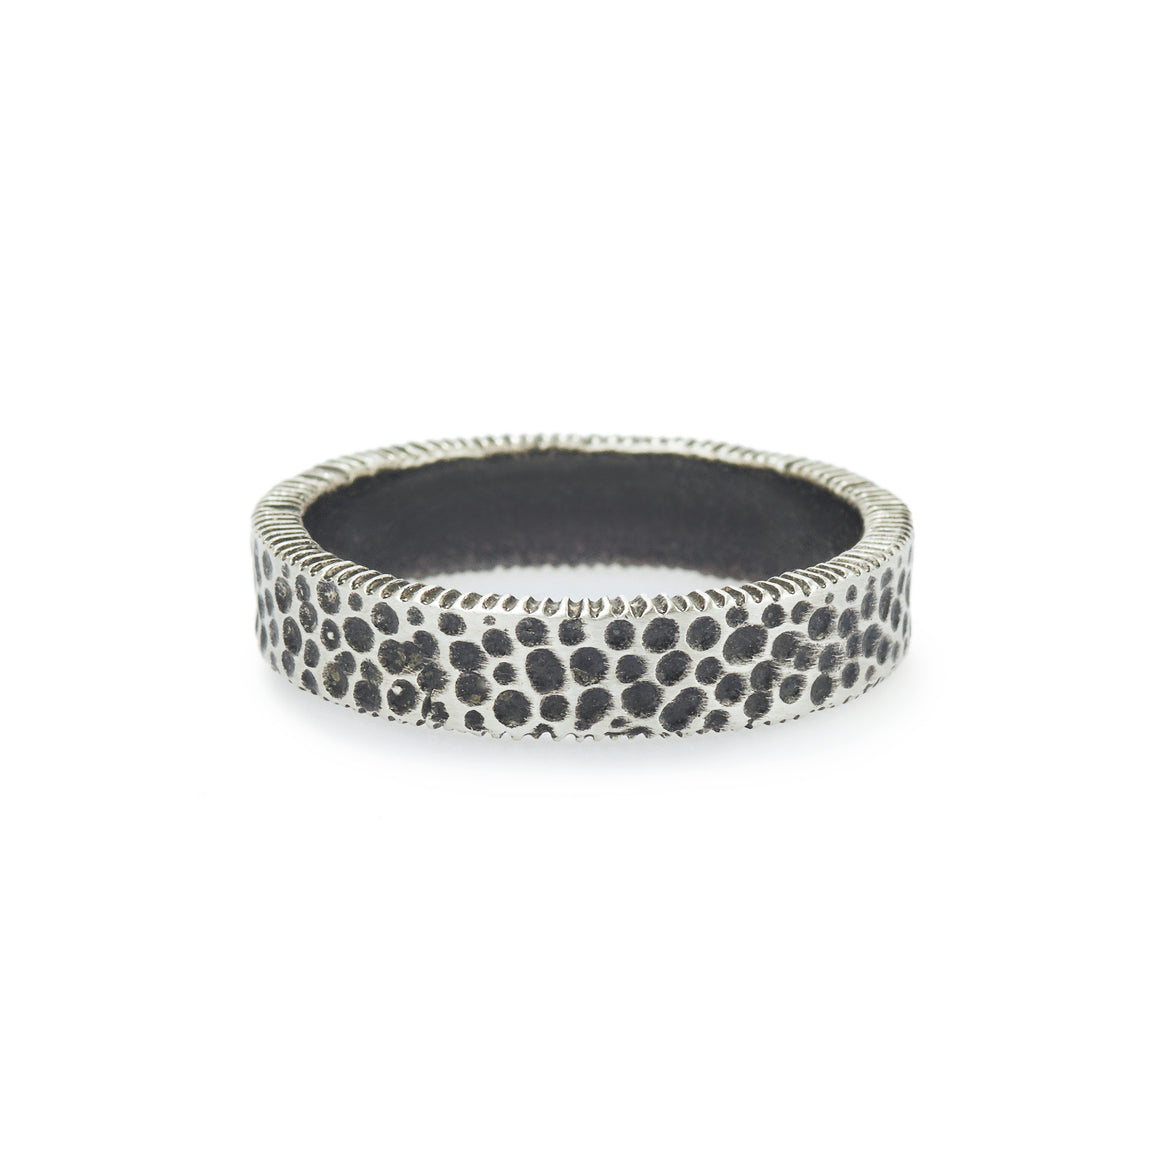 Oxidized Hammered Harmony Men's Ring